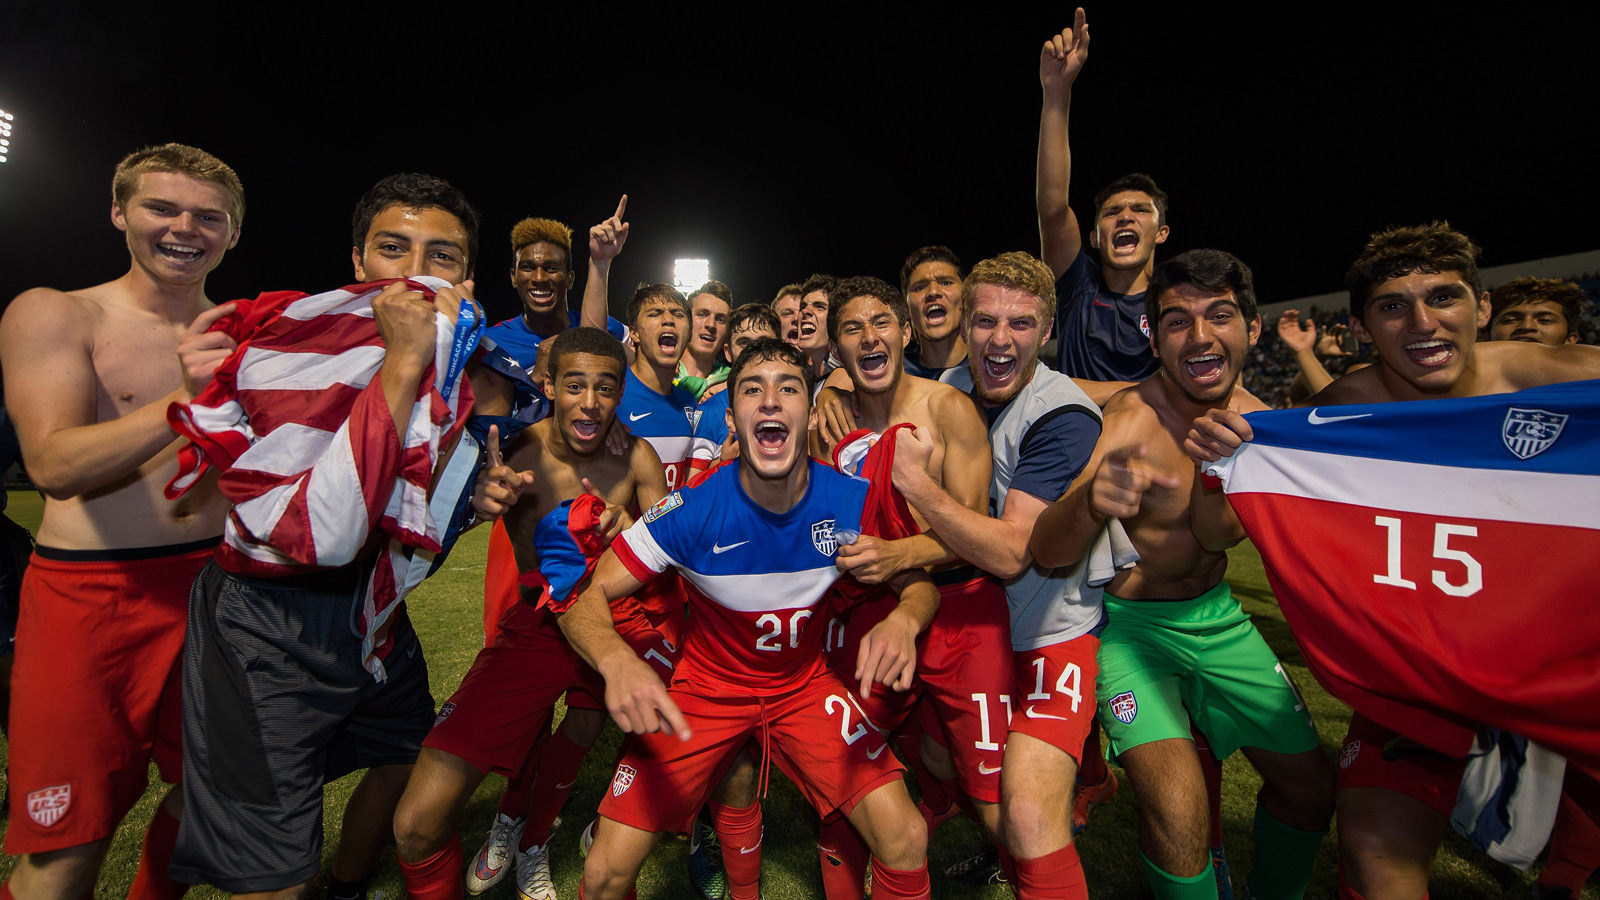 The U.S. U-17 national team celebrates qualifying for the FIFA U-17 World Cup after defeating Jamaica on penalty kicks following a 0-0 draw in a playoff match.